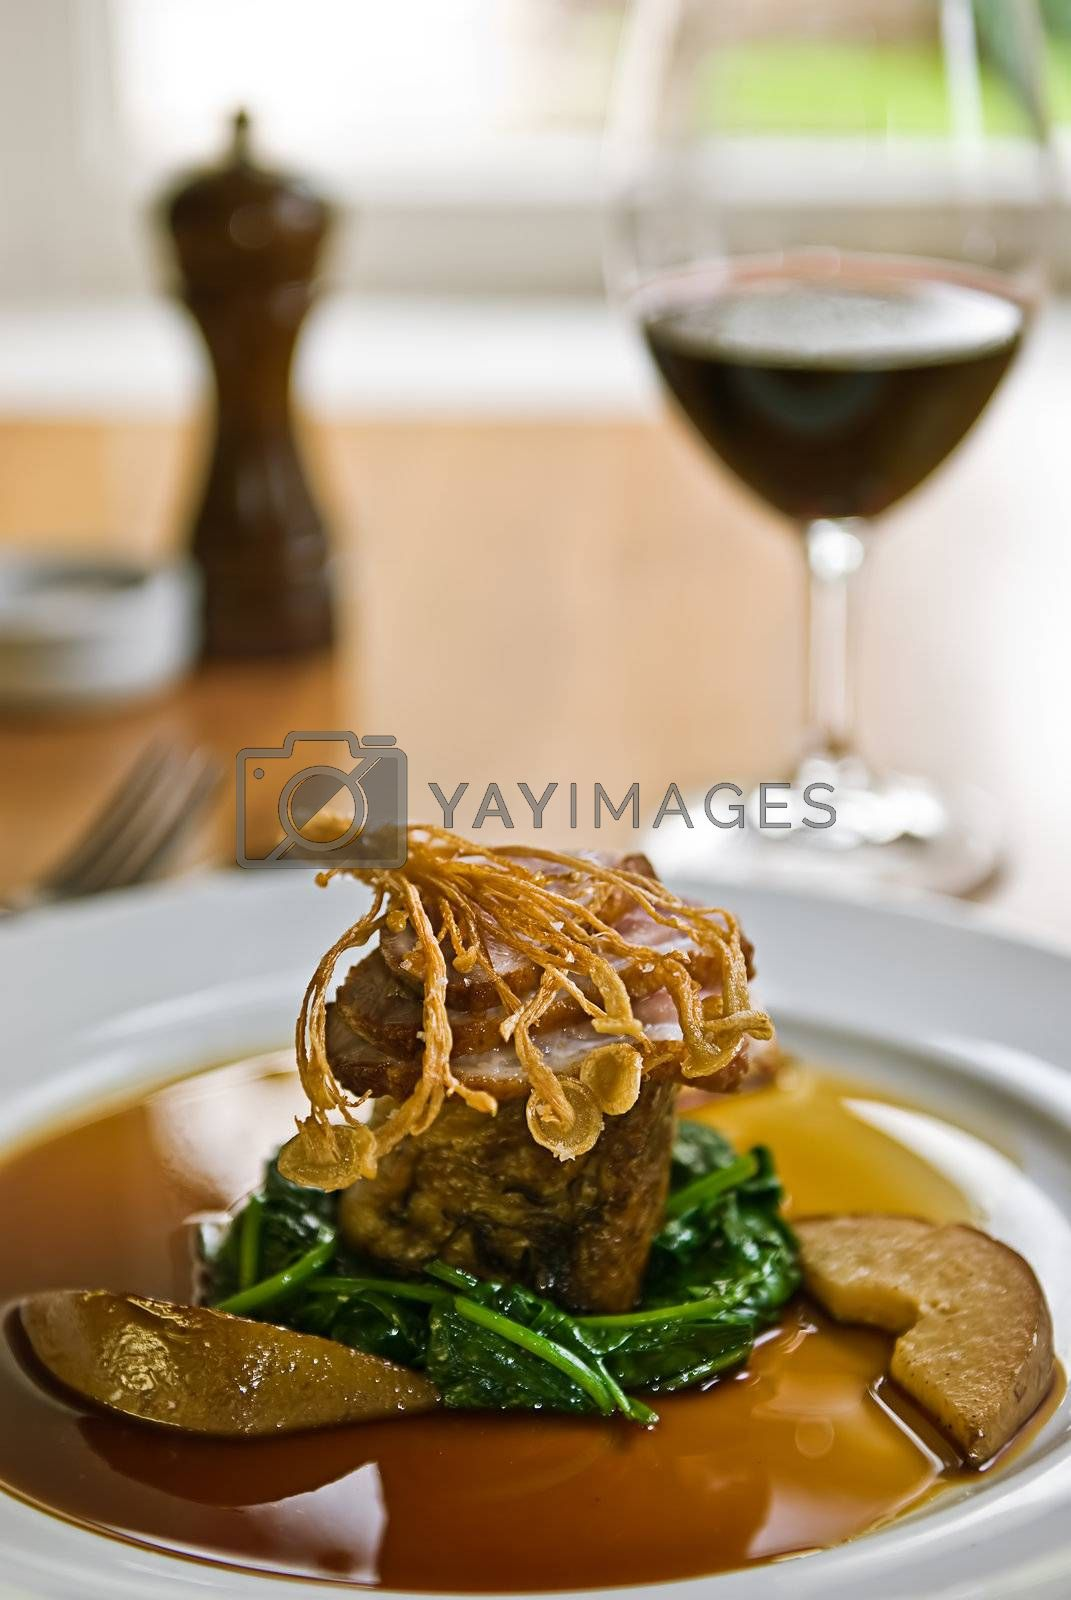 Crispy duck on a bed of spinach served with red wine in a restaurant.